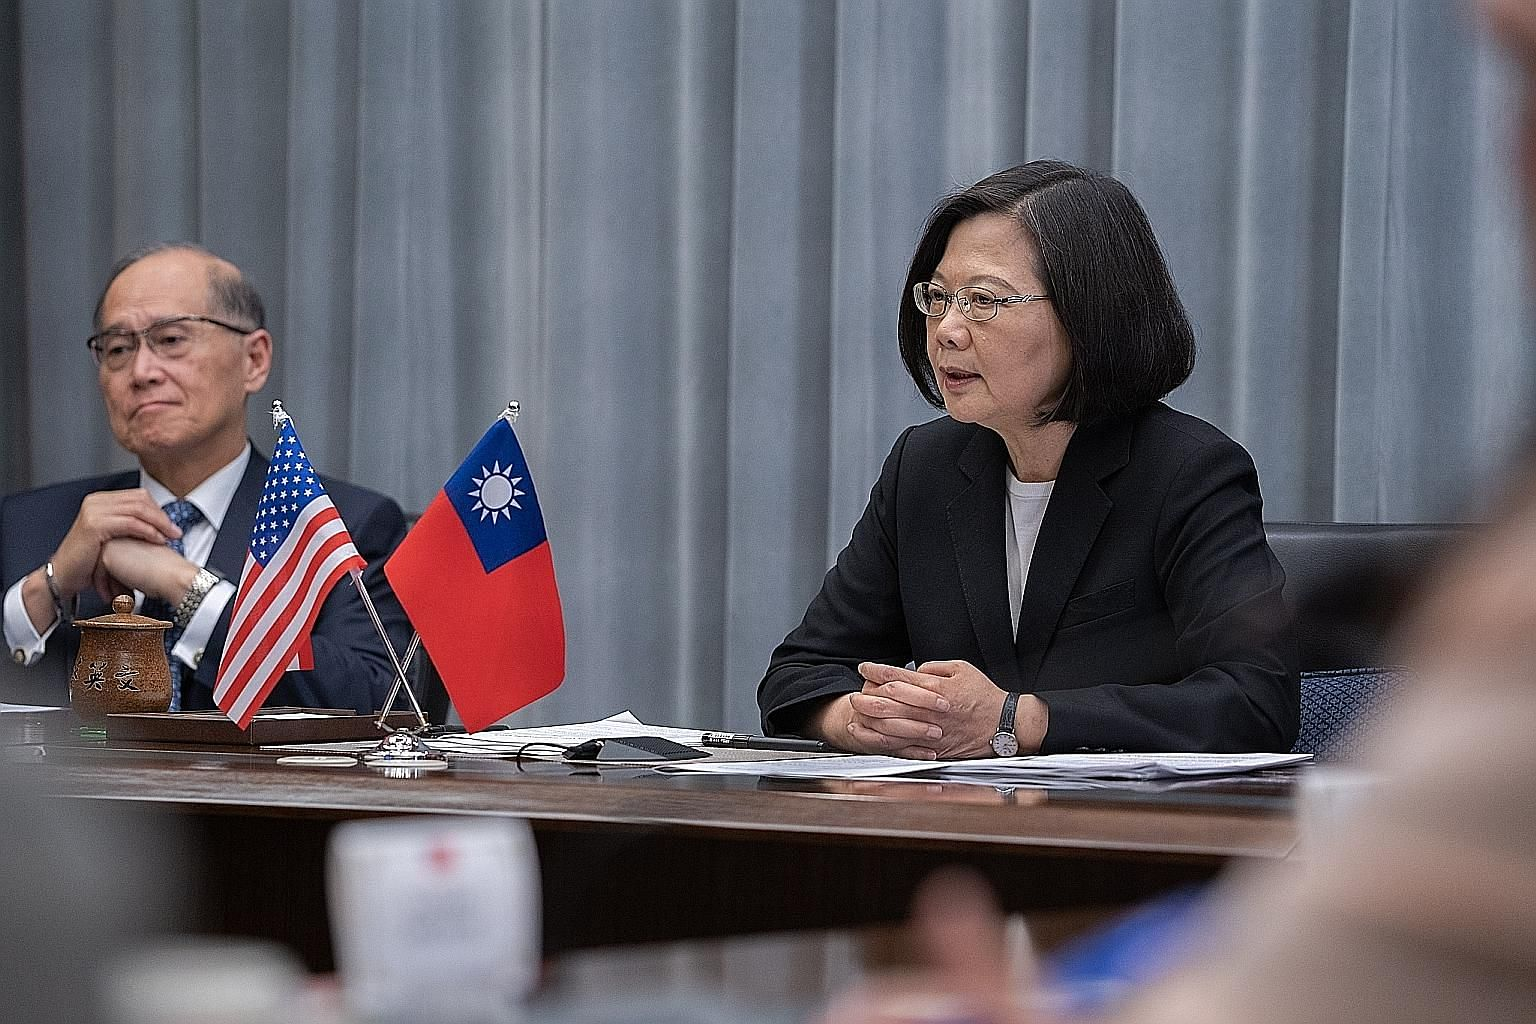 Taiwanese President Tsai Ing-wen speaking during a video conference with US think-tanks in Taipei on Tuesday. She said the self-governing island considers itself a full partner of the US' Free and Open Indo-Pacific strategy.